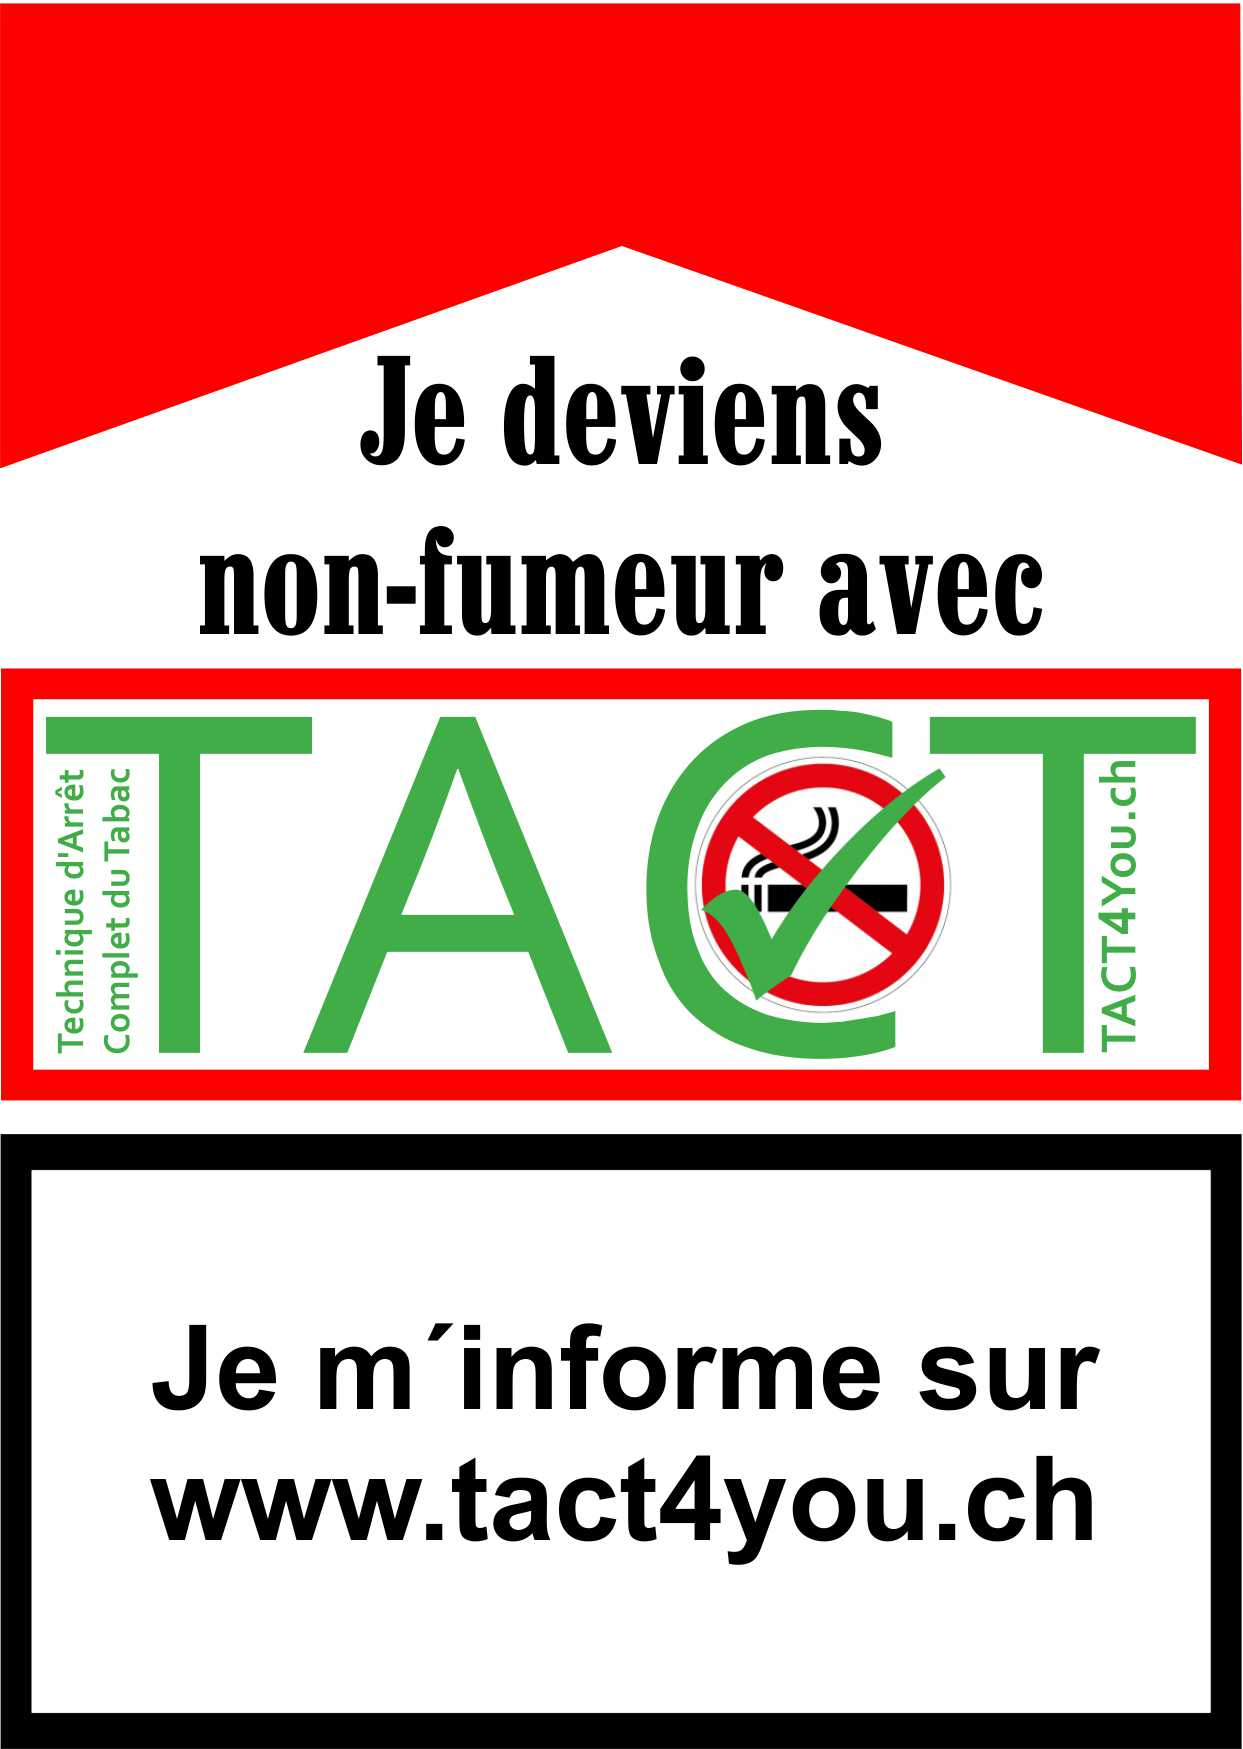 www.tact4you.ch